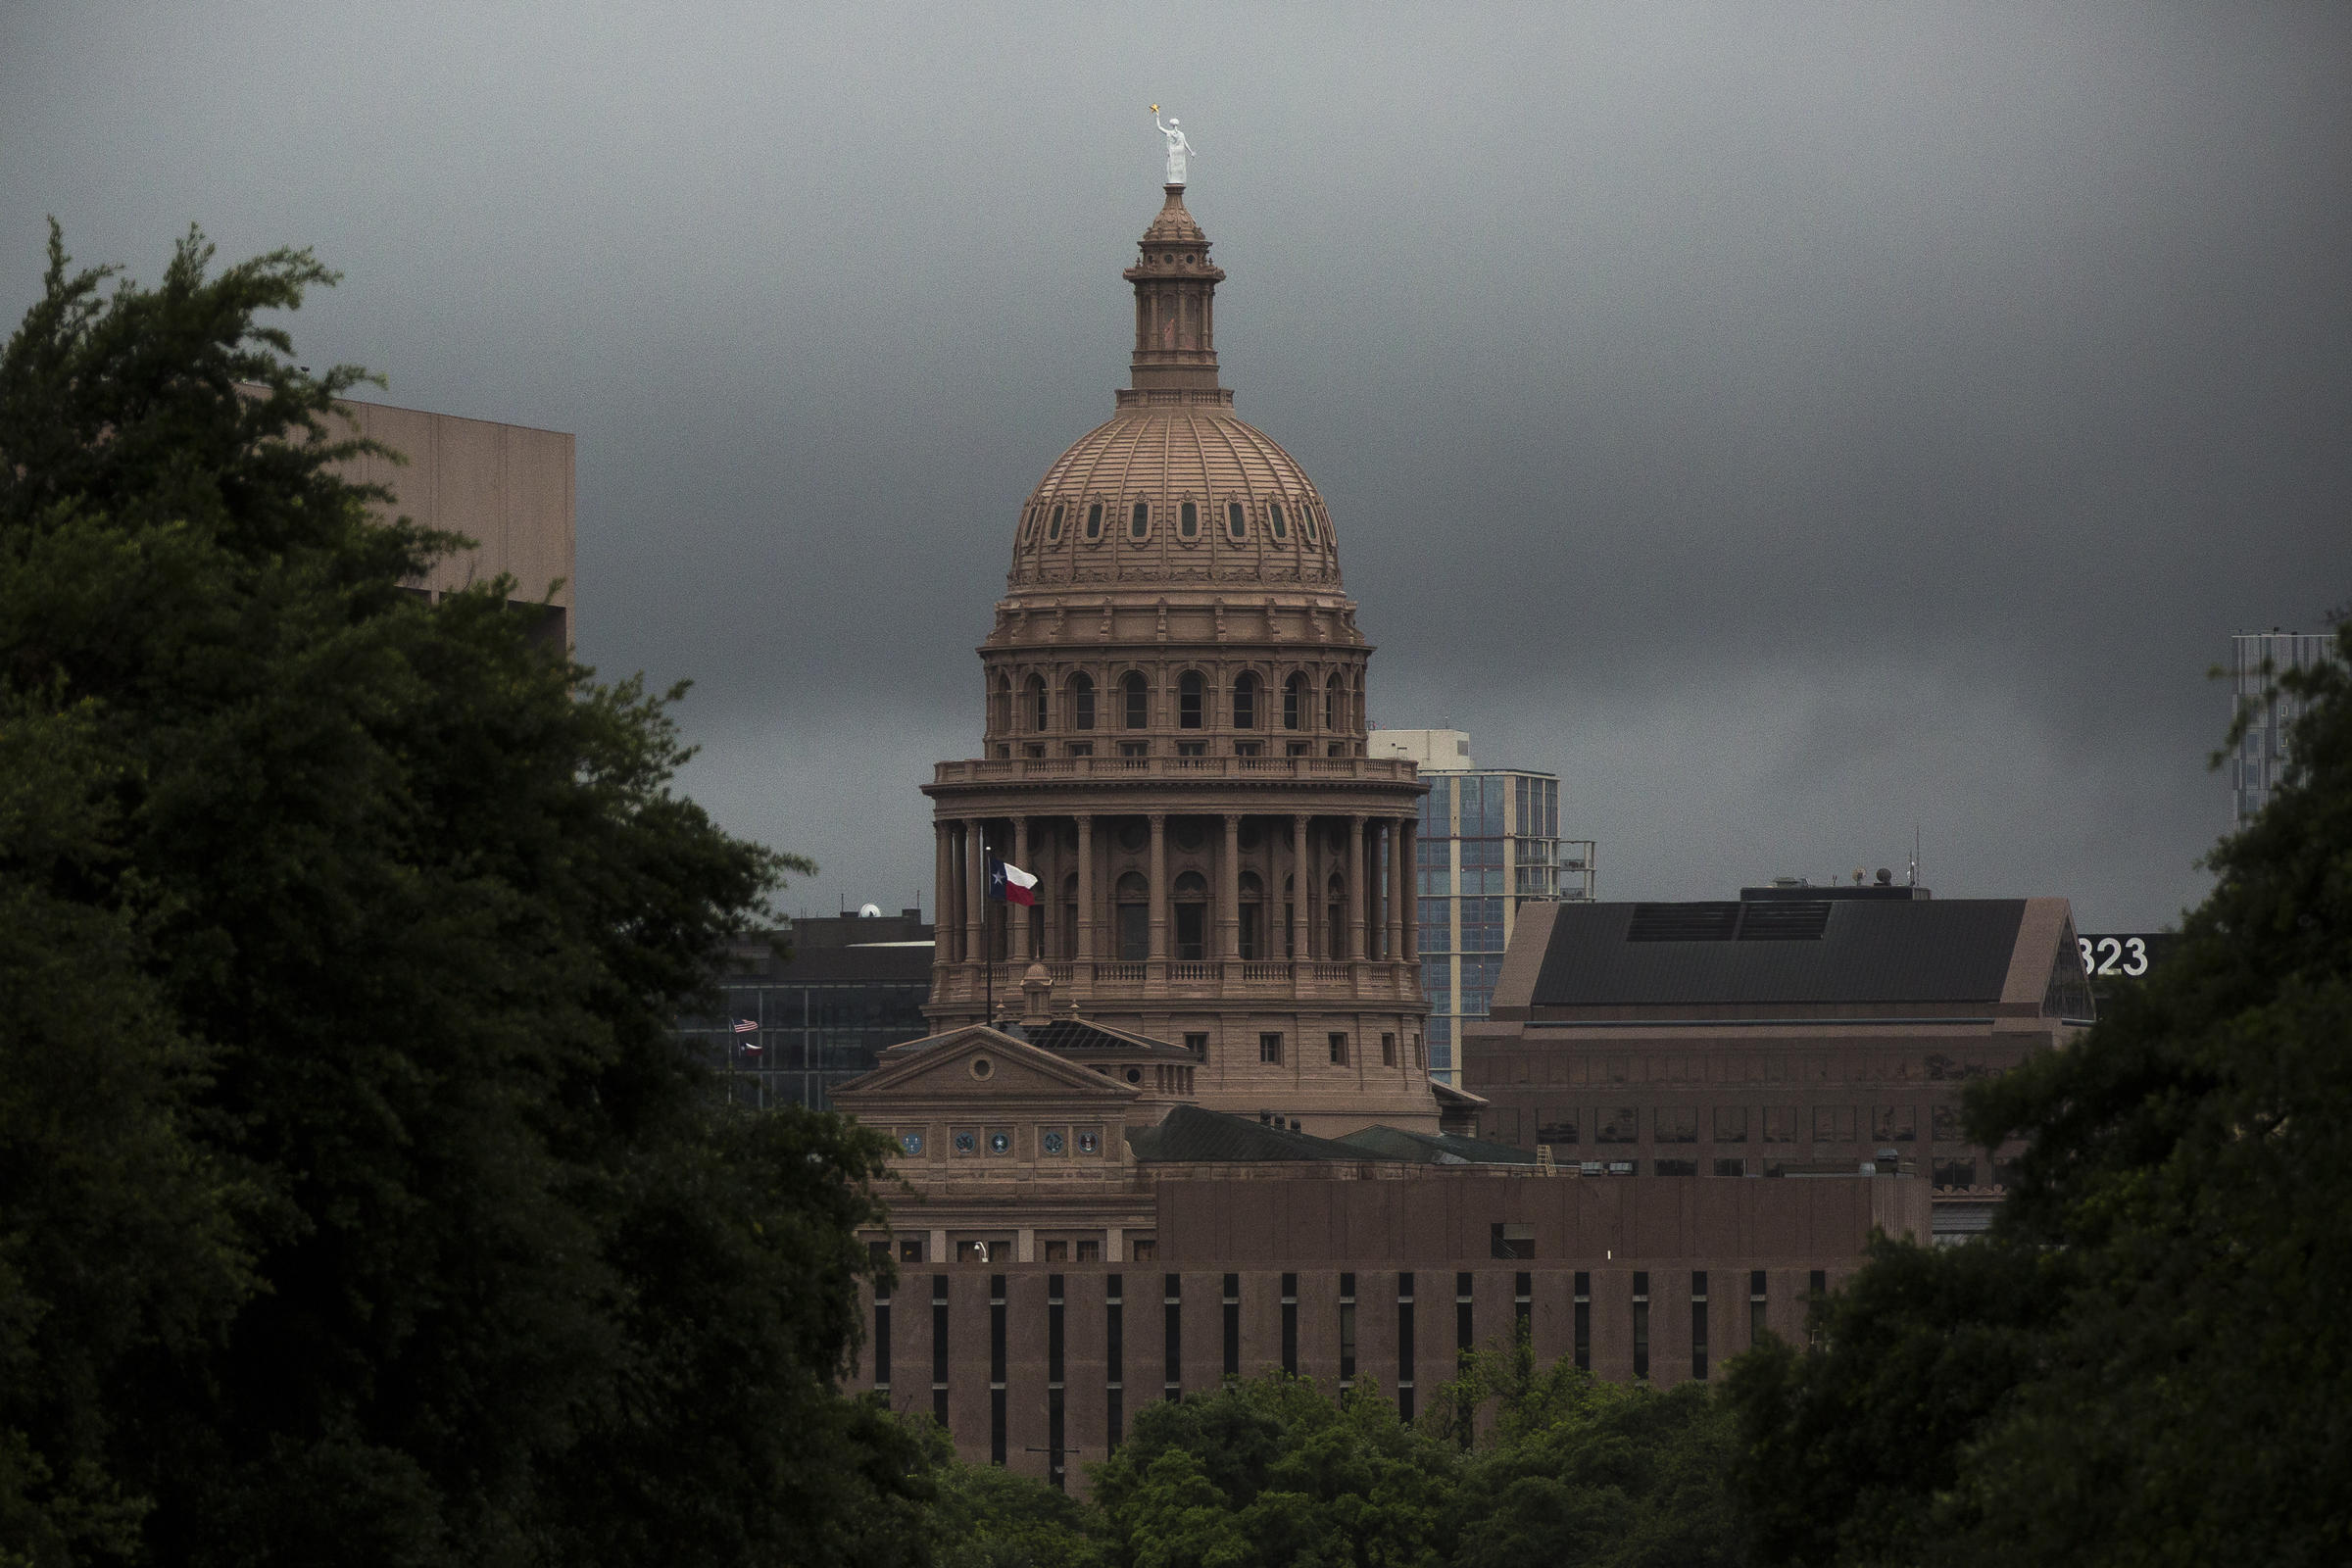 Texas Legislature ends session, may be back soon